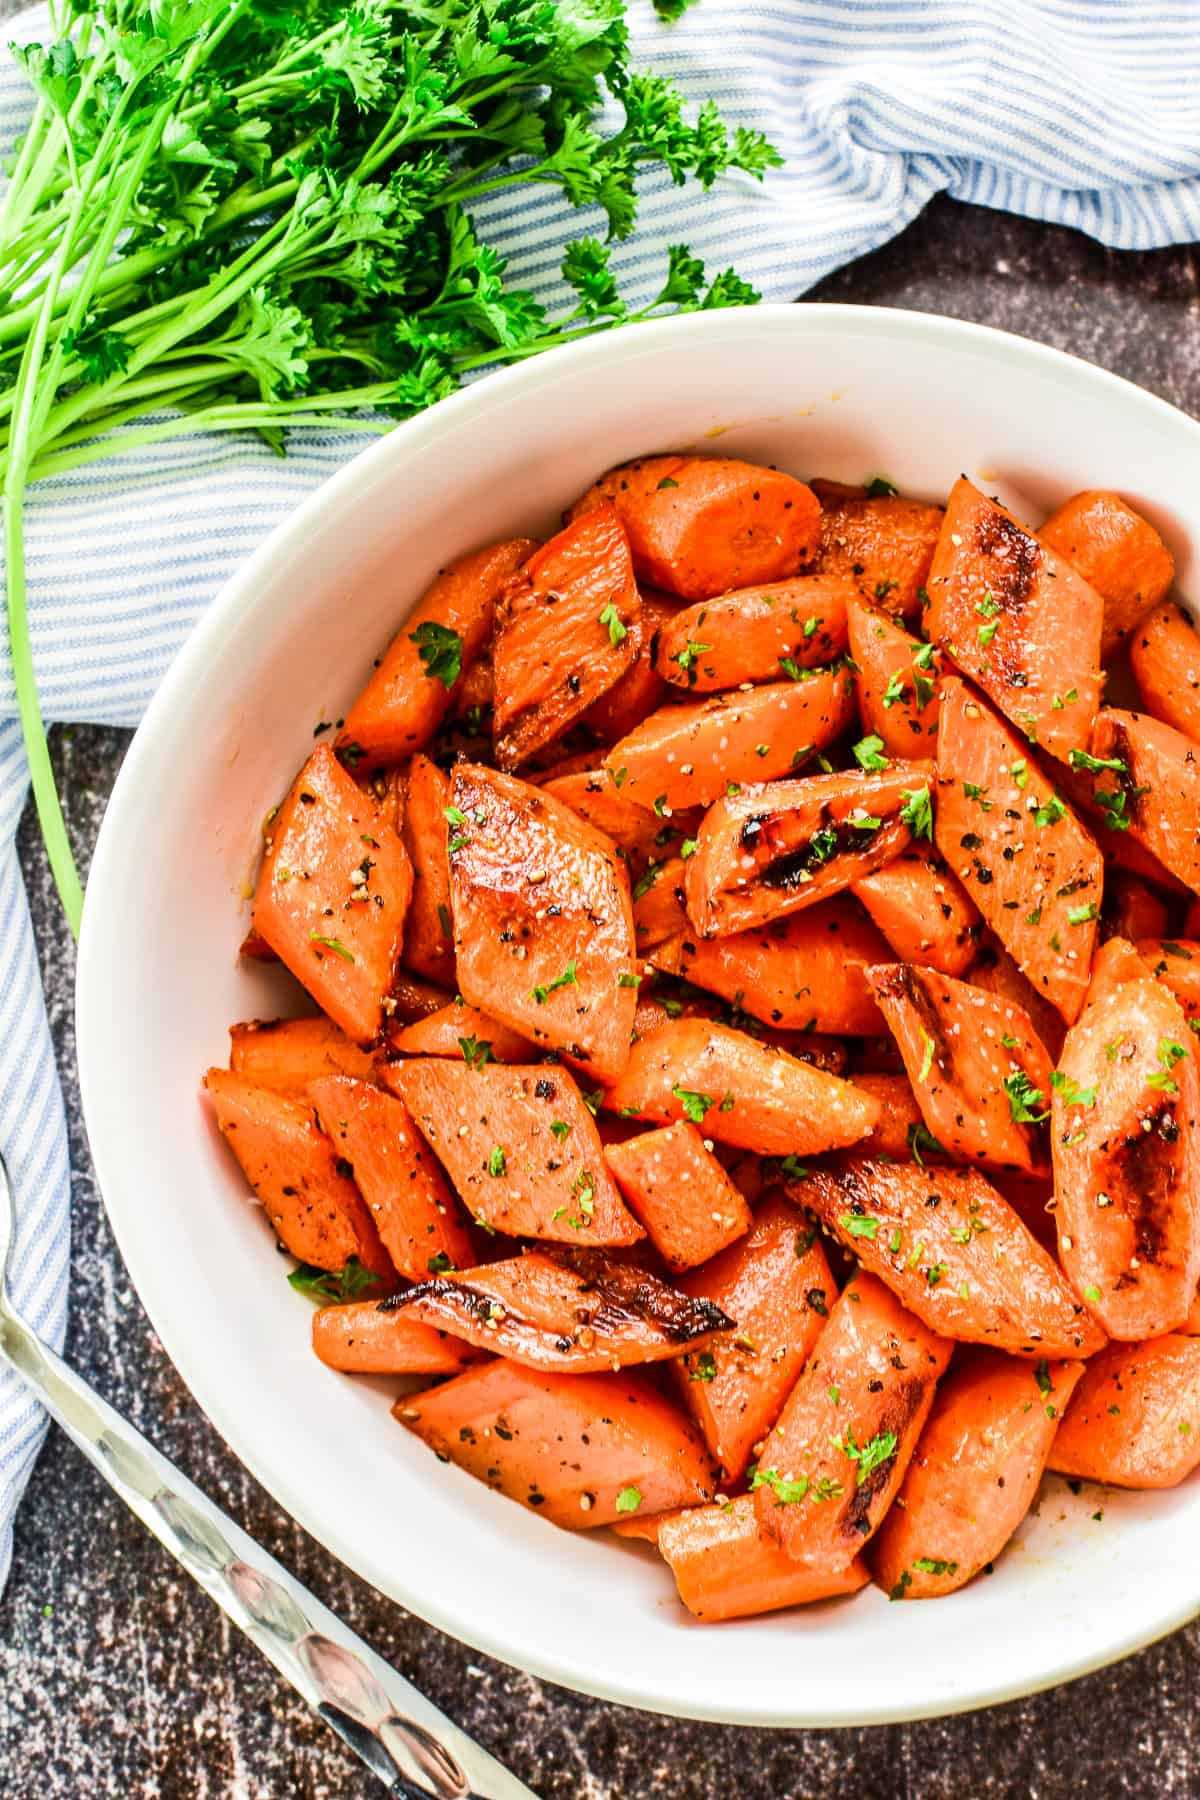 Overhead shot of Roasted Carrots in a serving bowl